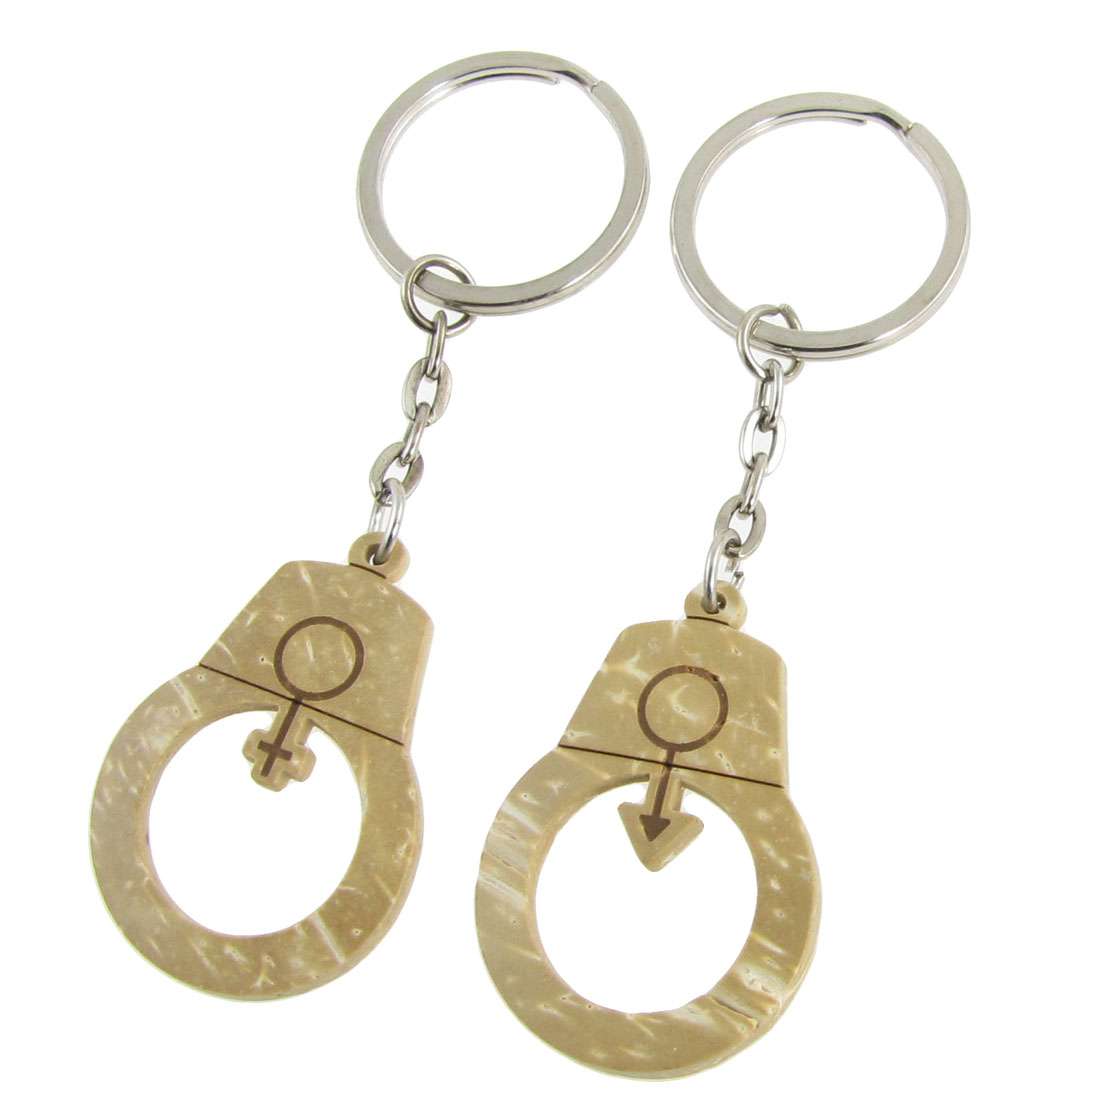 Wooden Gender Symbol Carved Pendants Keychain for Lovers 2 Pcs